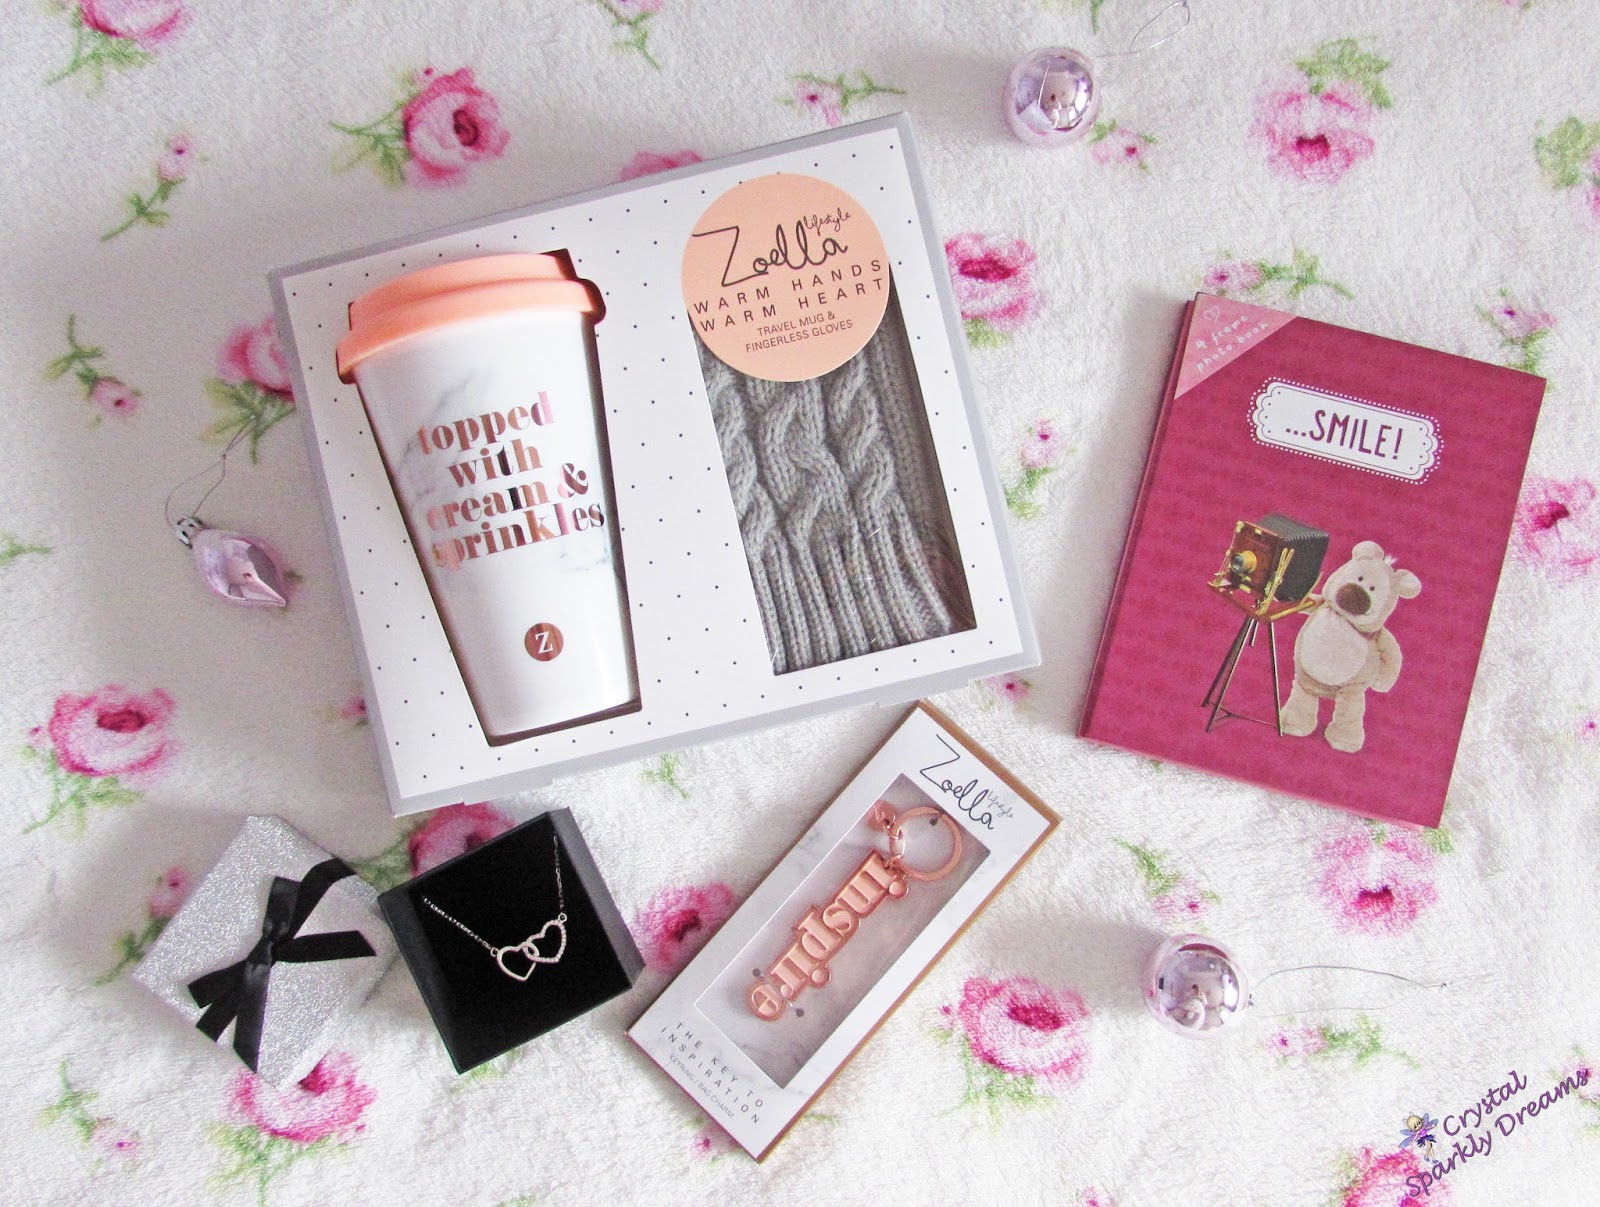 Fingerless gloves asda - I Also Received These Bits From Friends I Just Love The Zoella Items The Key Chain Already Has Pride Of Place On My Favourite Bag And The Necklace Is